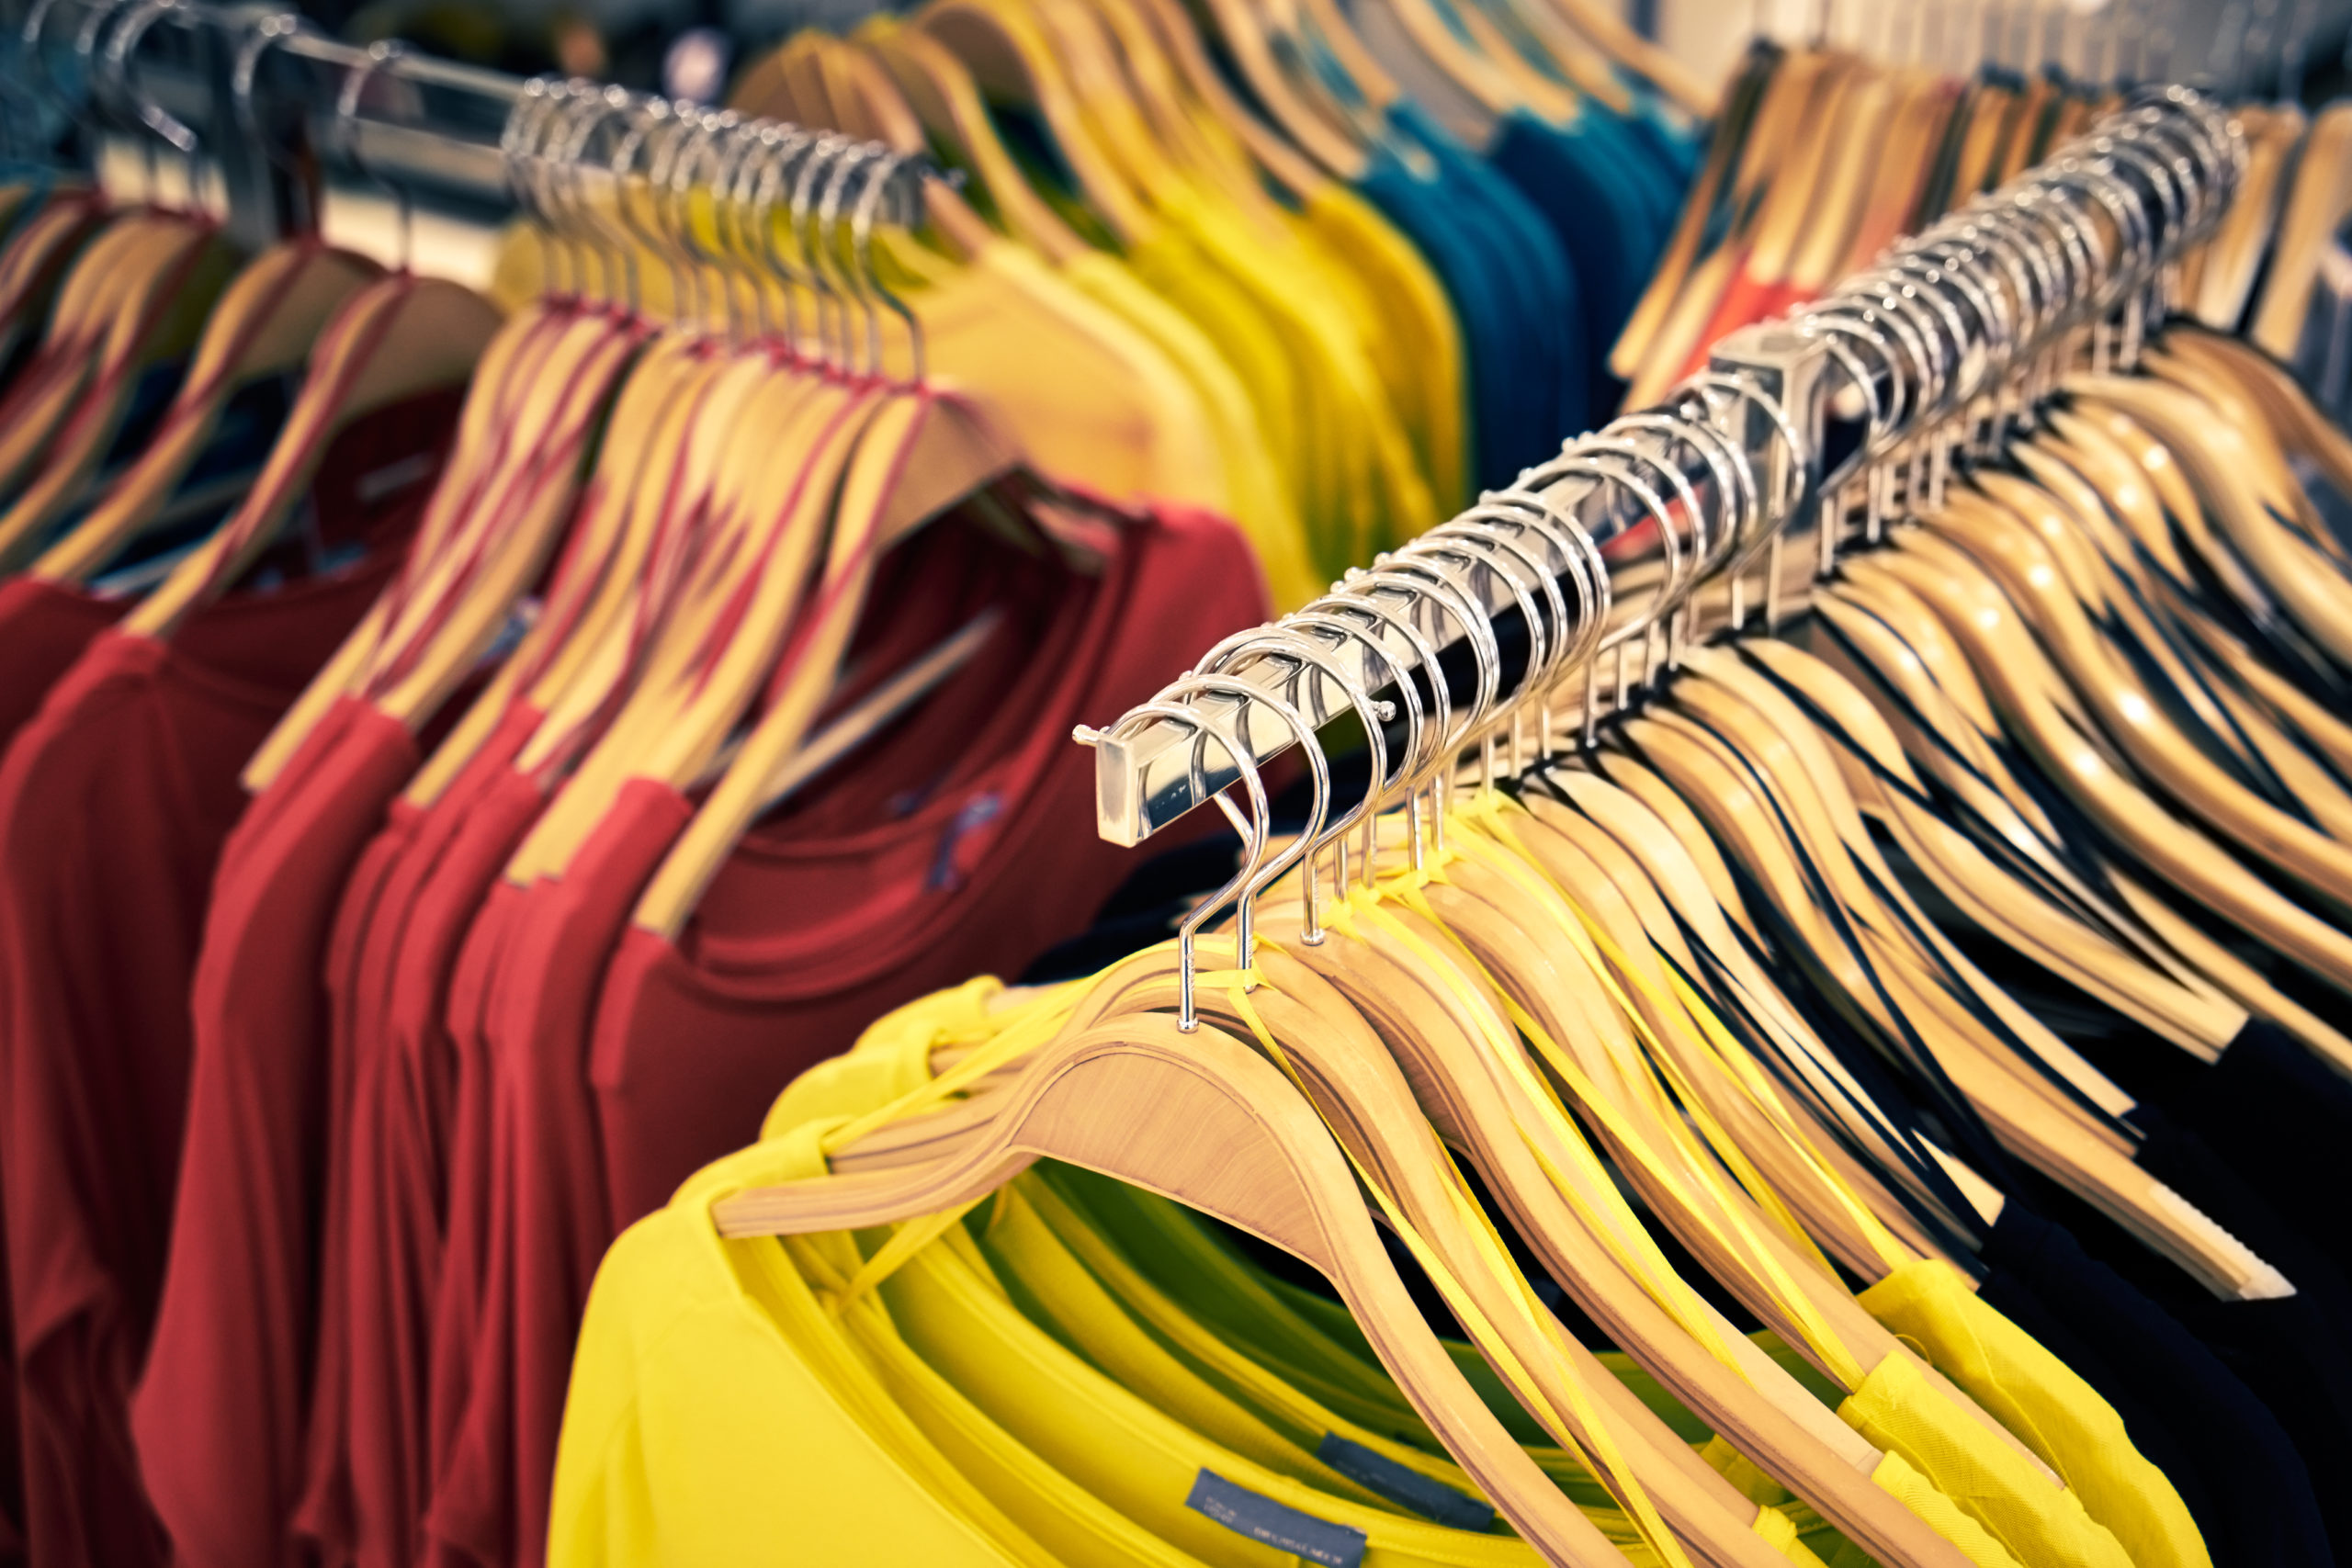 iew of clothes shop with t-shirts hanging on stand